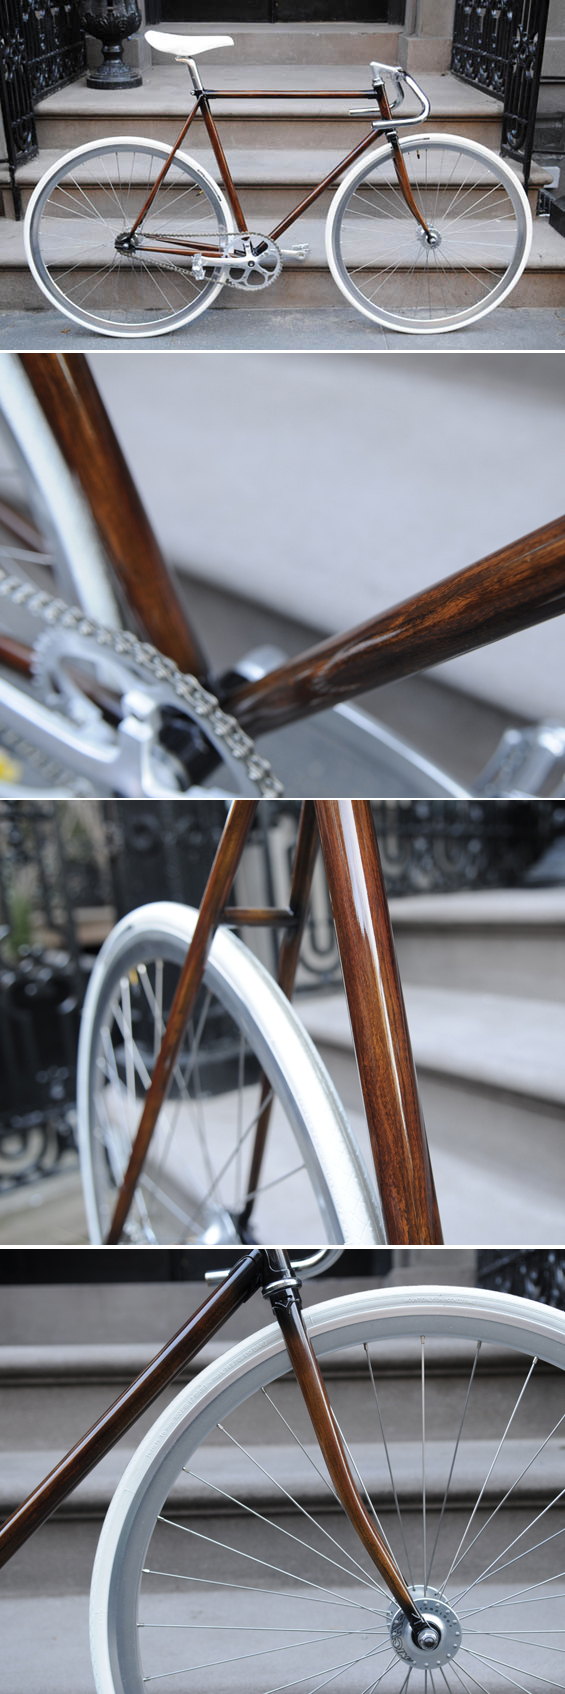 Detail Collective | Lifestyle | Cycle Chic & Bike Cool | Image: Pinterest via Jamala Johns